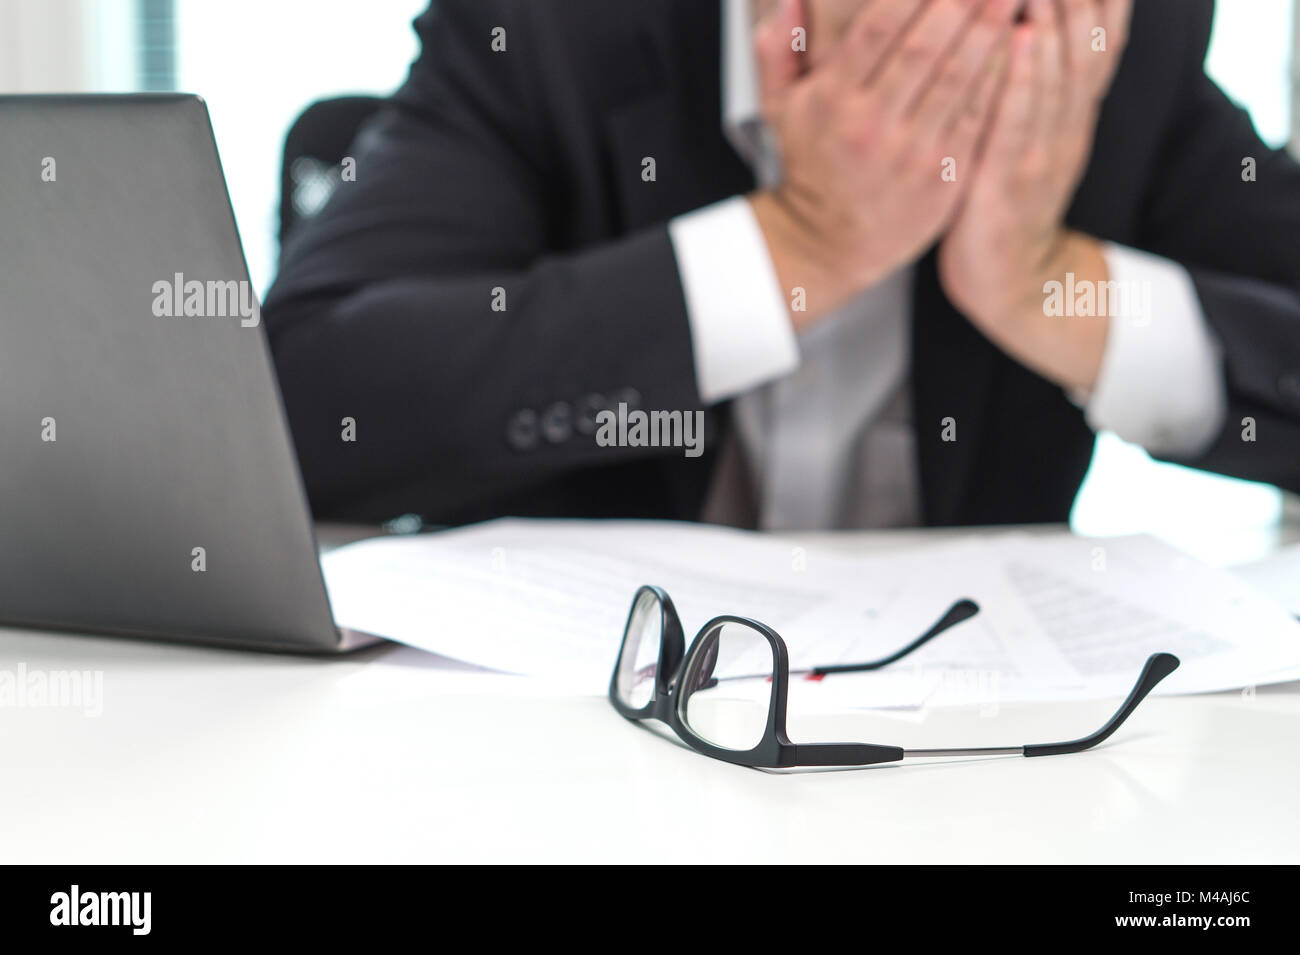 Stressed business man covering face with hands in office. Working over time or too much. Problem with failing business - Stock Image